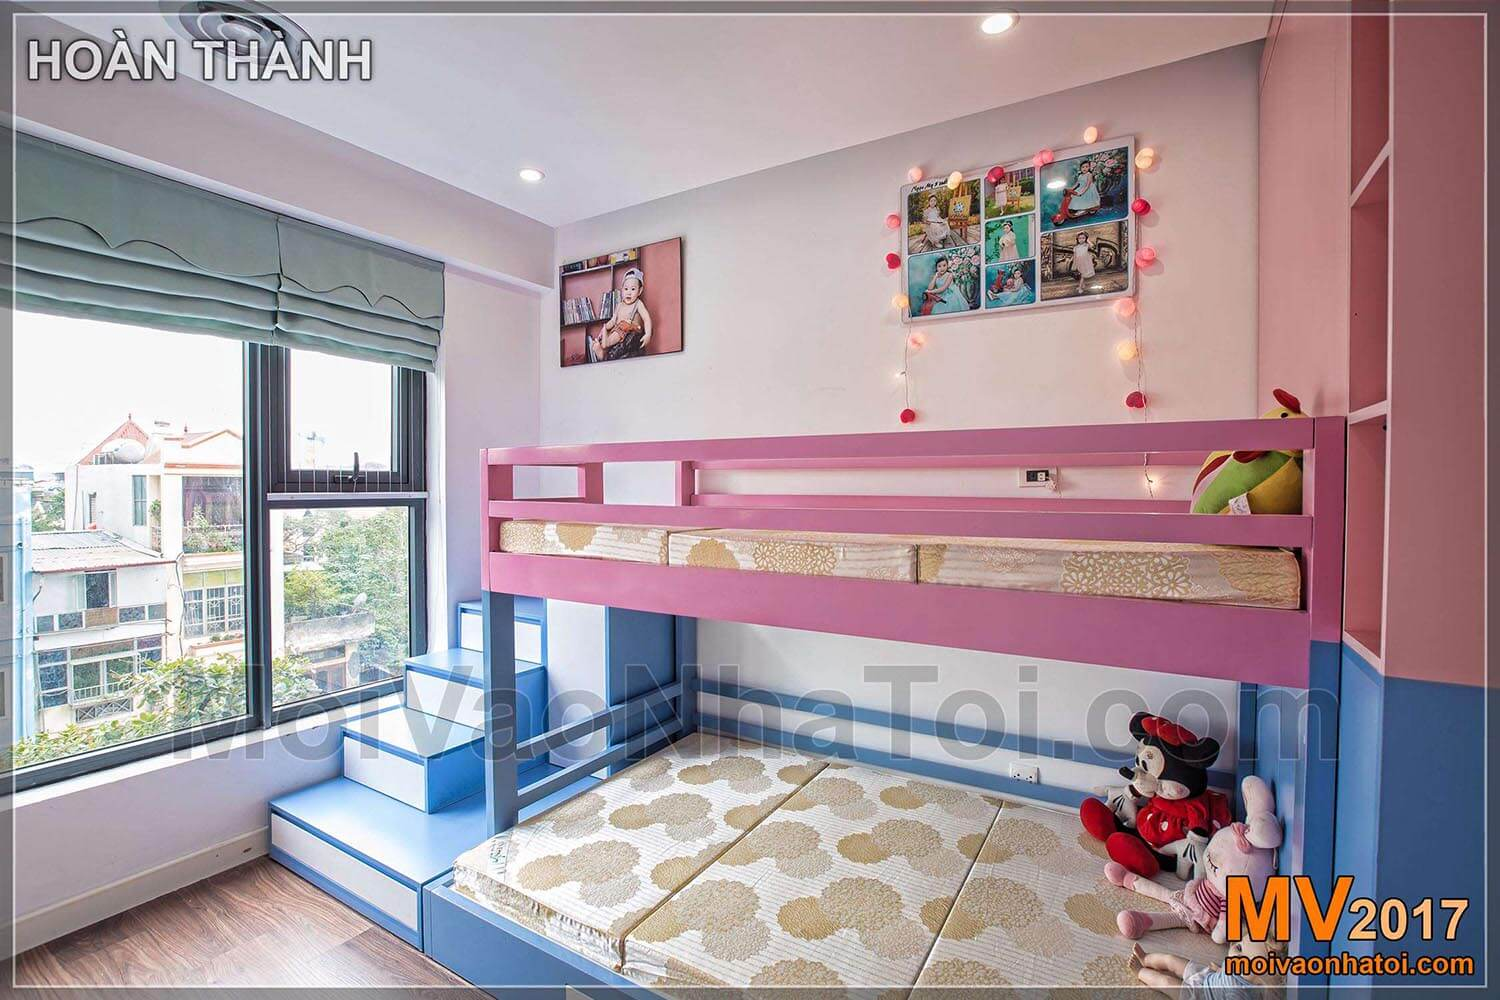 design and construction of a child bedroom with bunk beds in Imperia Sky Garden apartment building